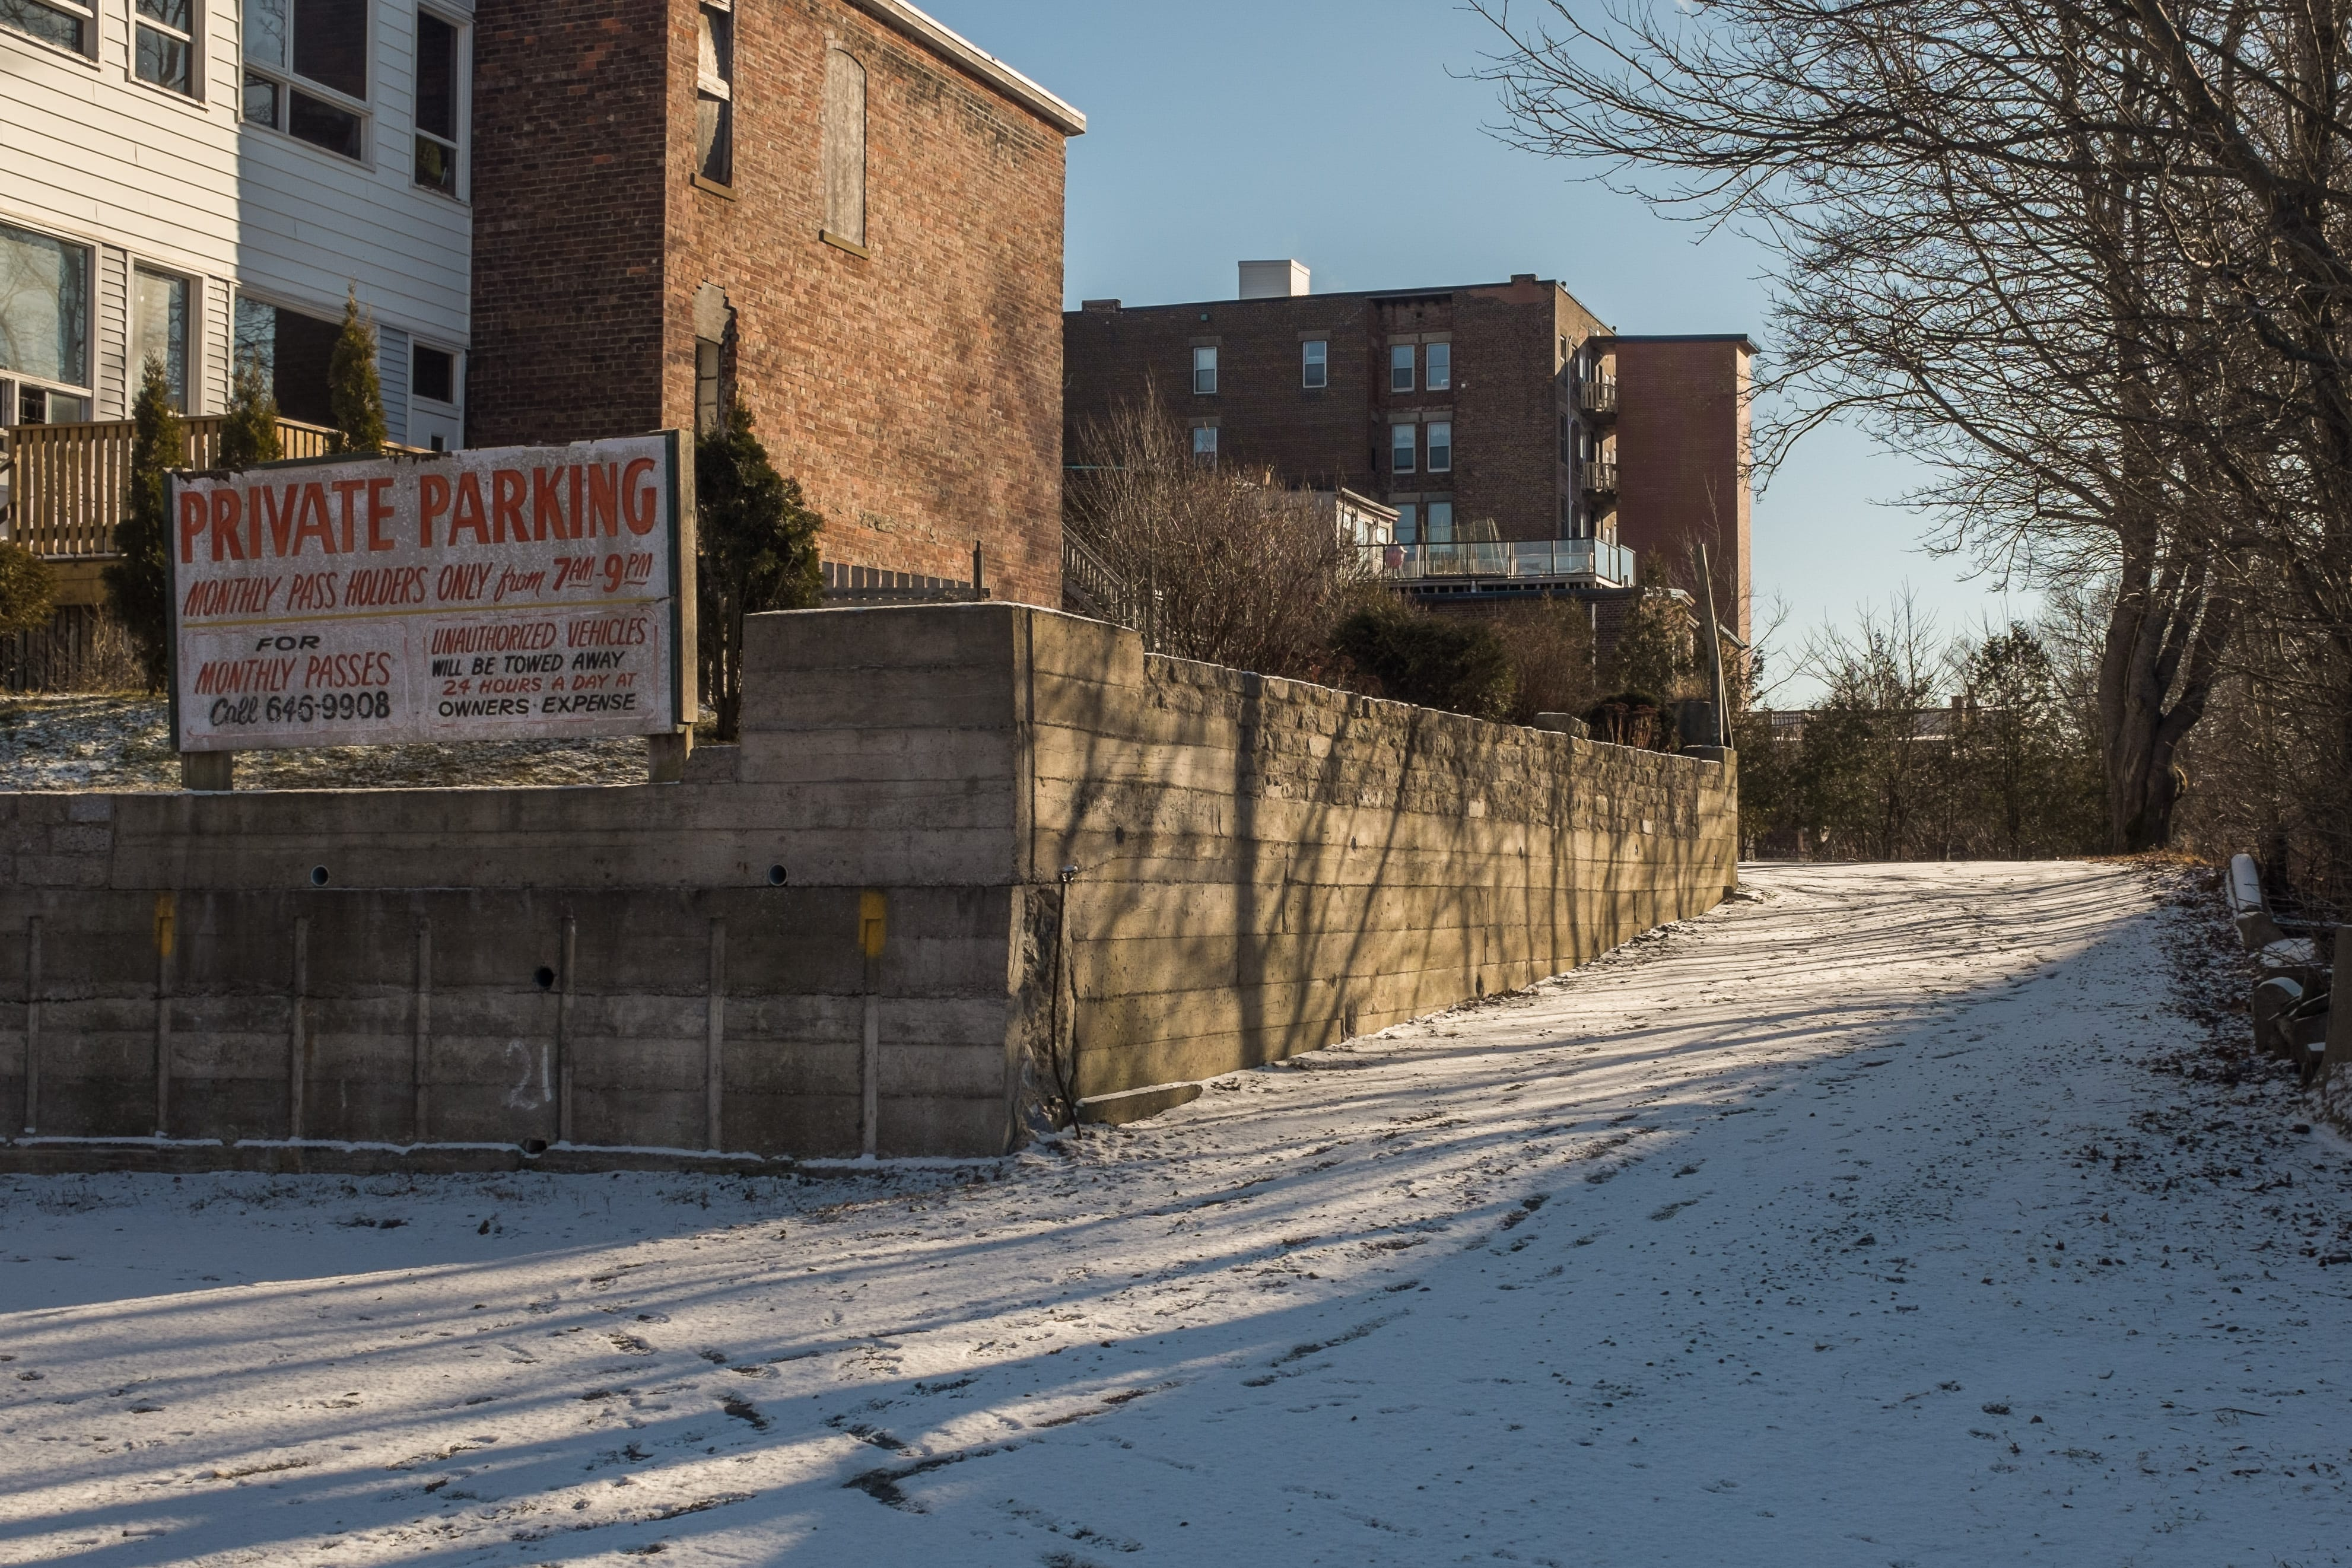 A photograph depicting Private Parking Lot in Winter Saint John